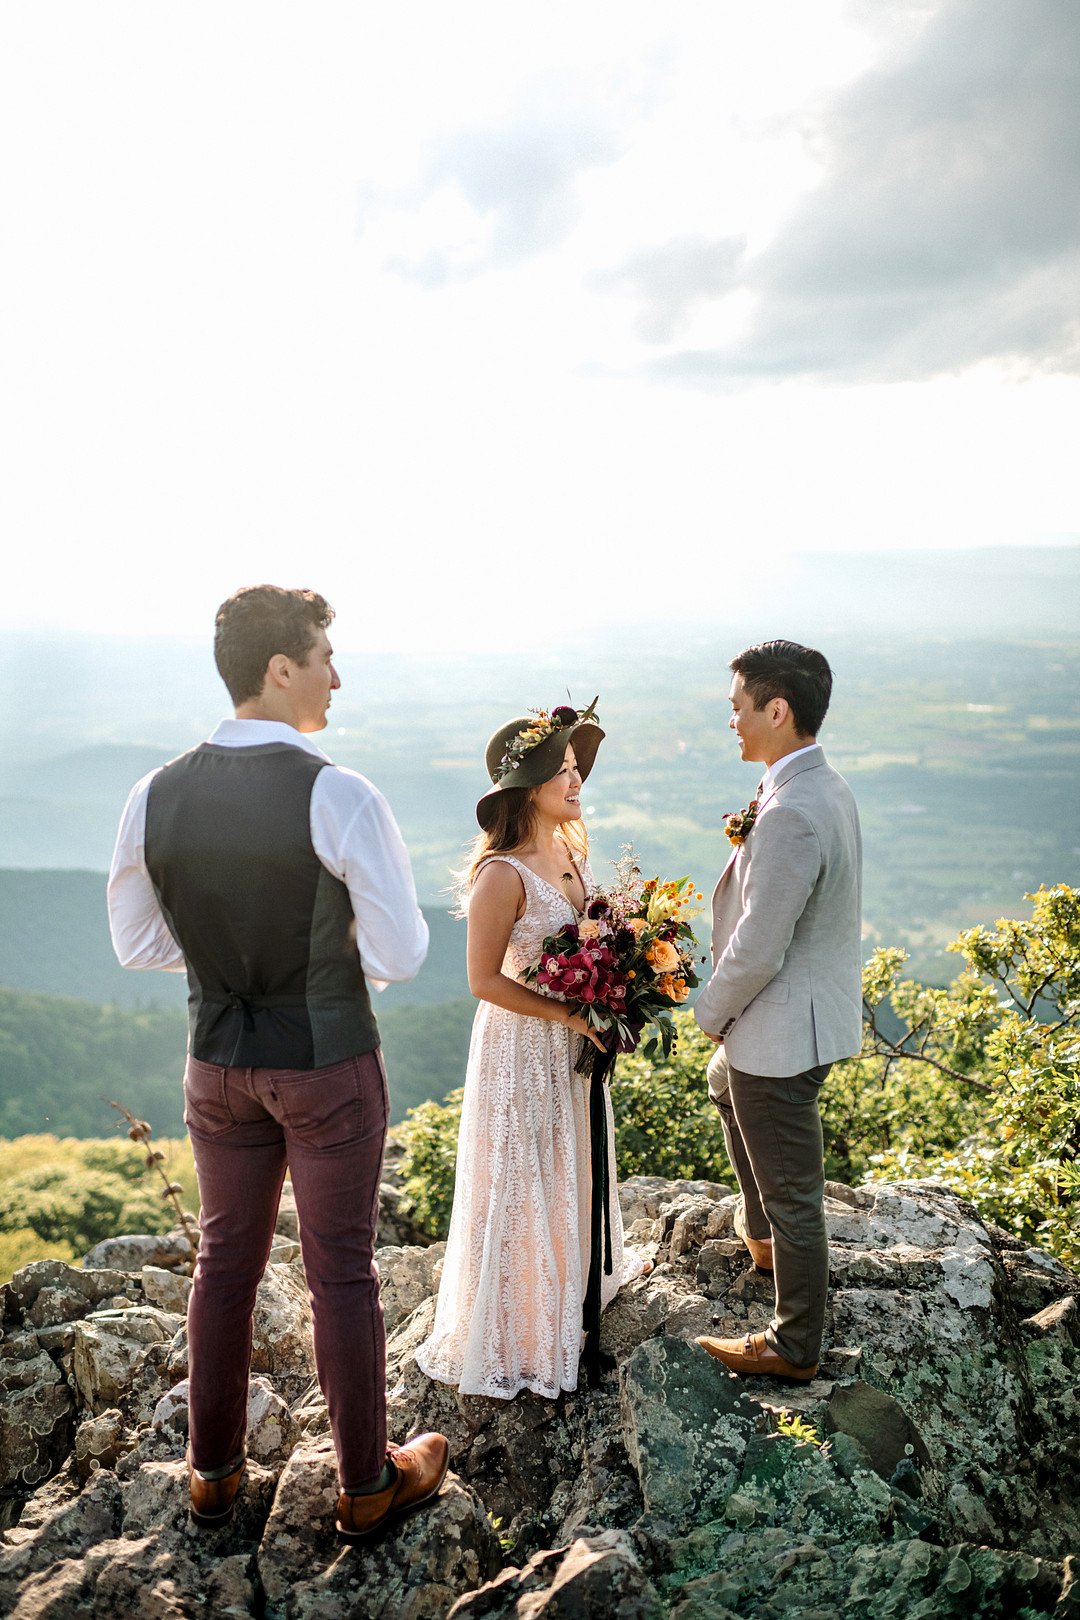 Boho Mountain Elopement in Shenandoah National Park_1001 Angles Photography_Shenandoah National Park Adventure Elopement-166_low